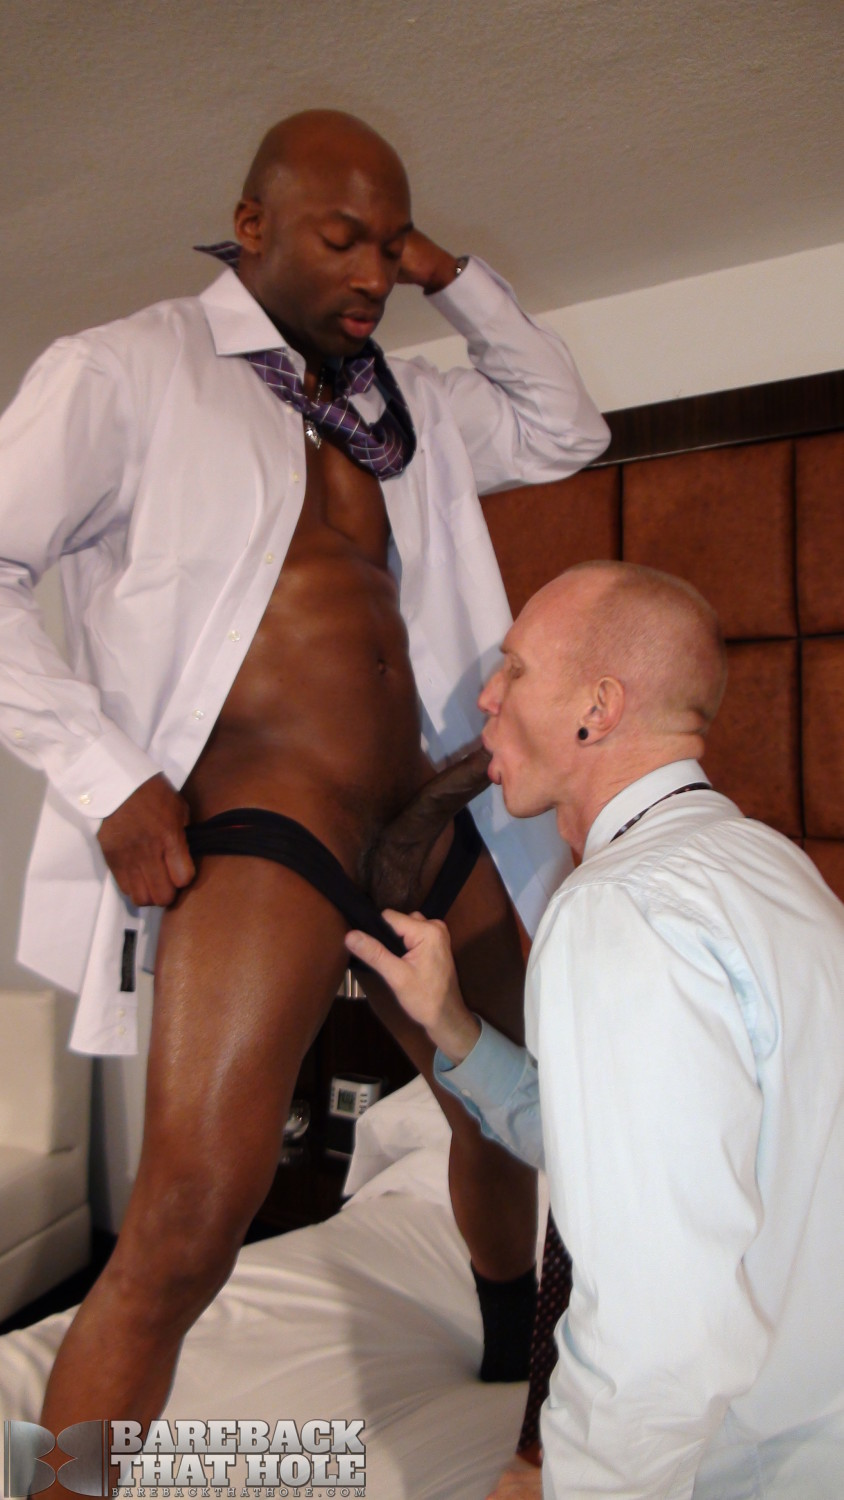 Bareback That Hole Champ Robinson and Mason Garet Interracial Big Black Cock Bareback Amateur Gay Porn 07 Black Corporate Executive Barebacks His White Co Worker